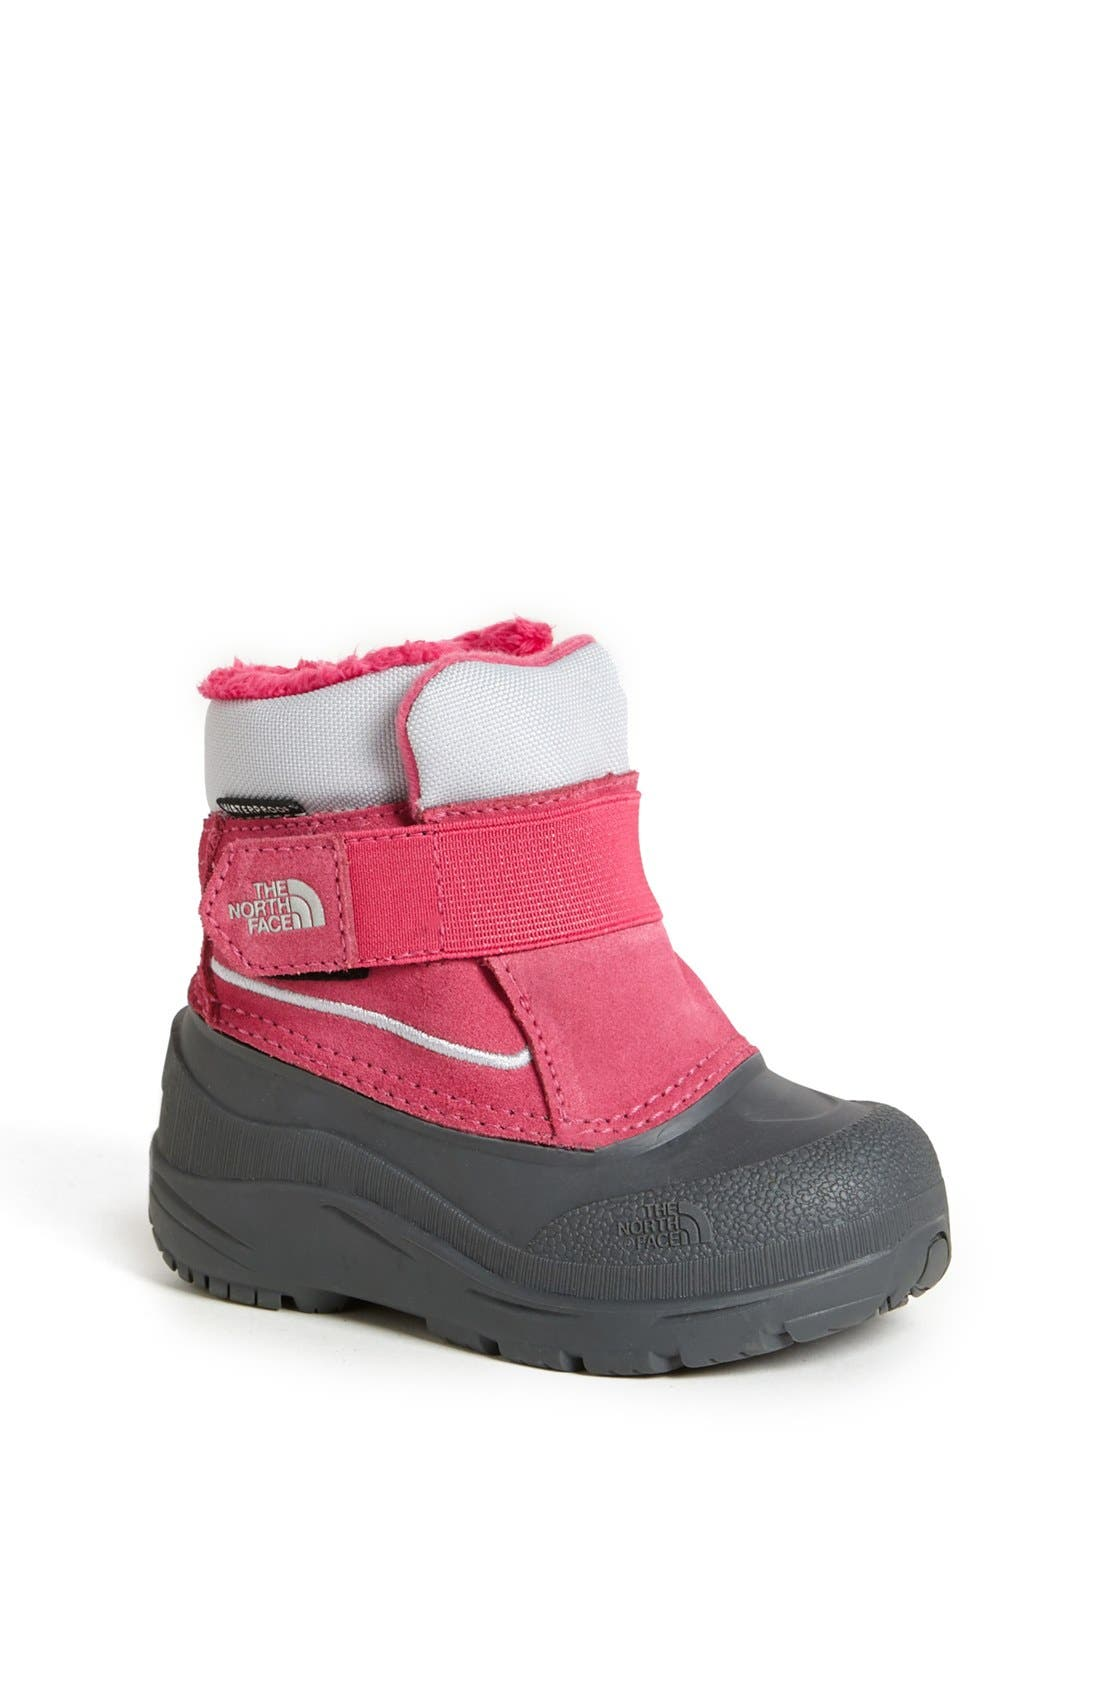 Main Image - The North Face 'Powder Hound' Waterproof Snow Boot (Walker & Toddler)